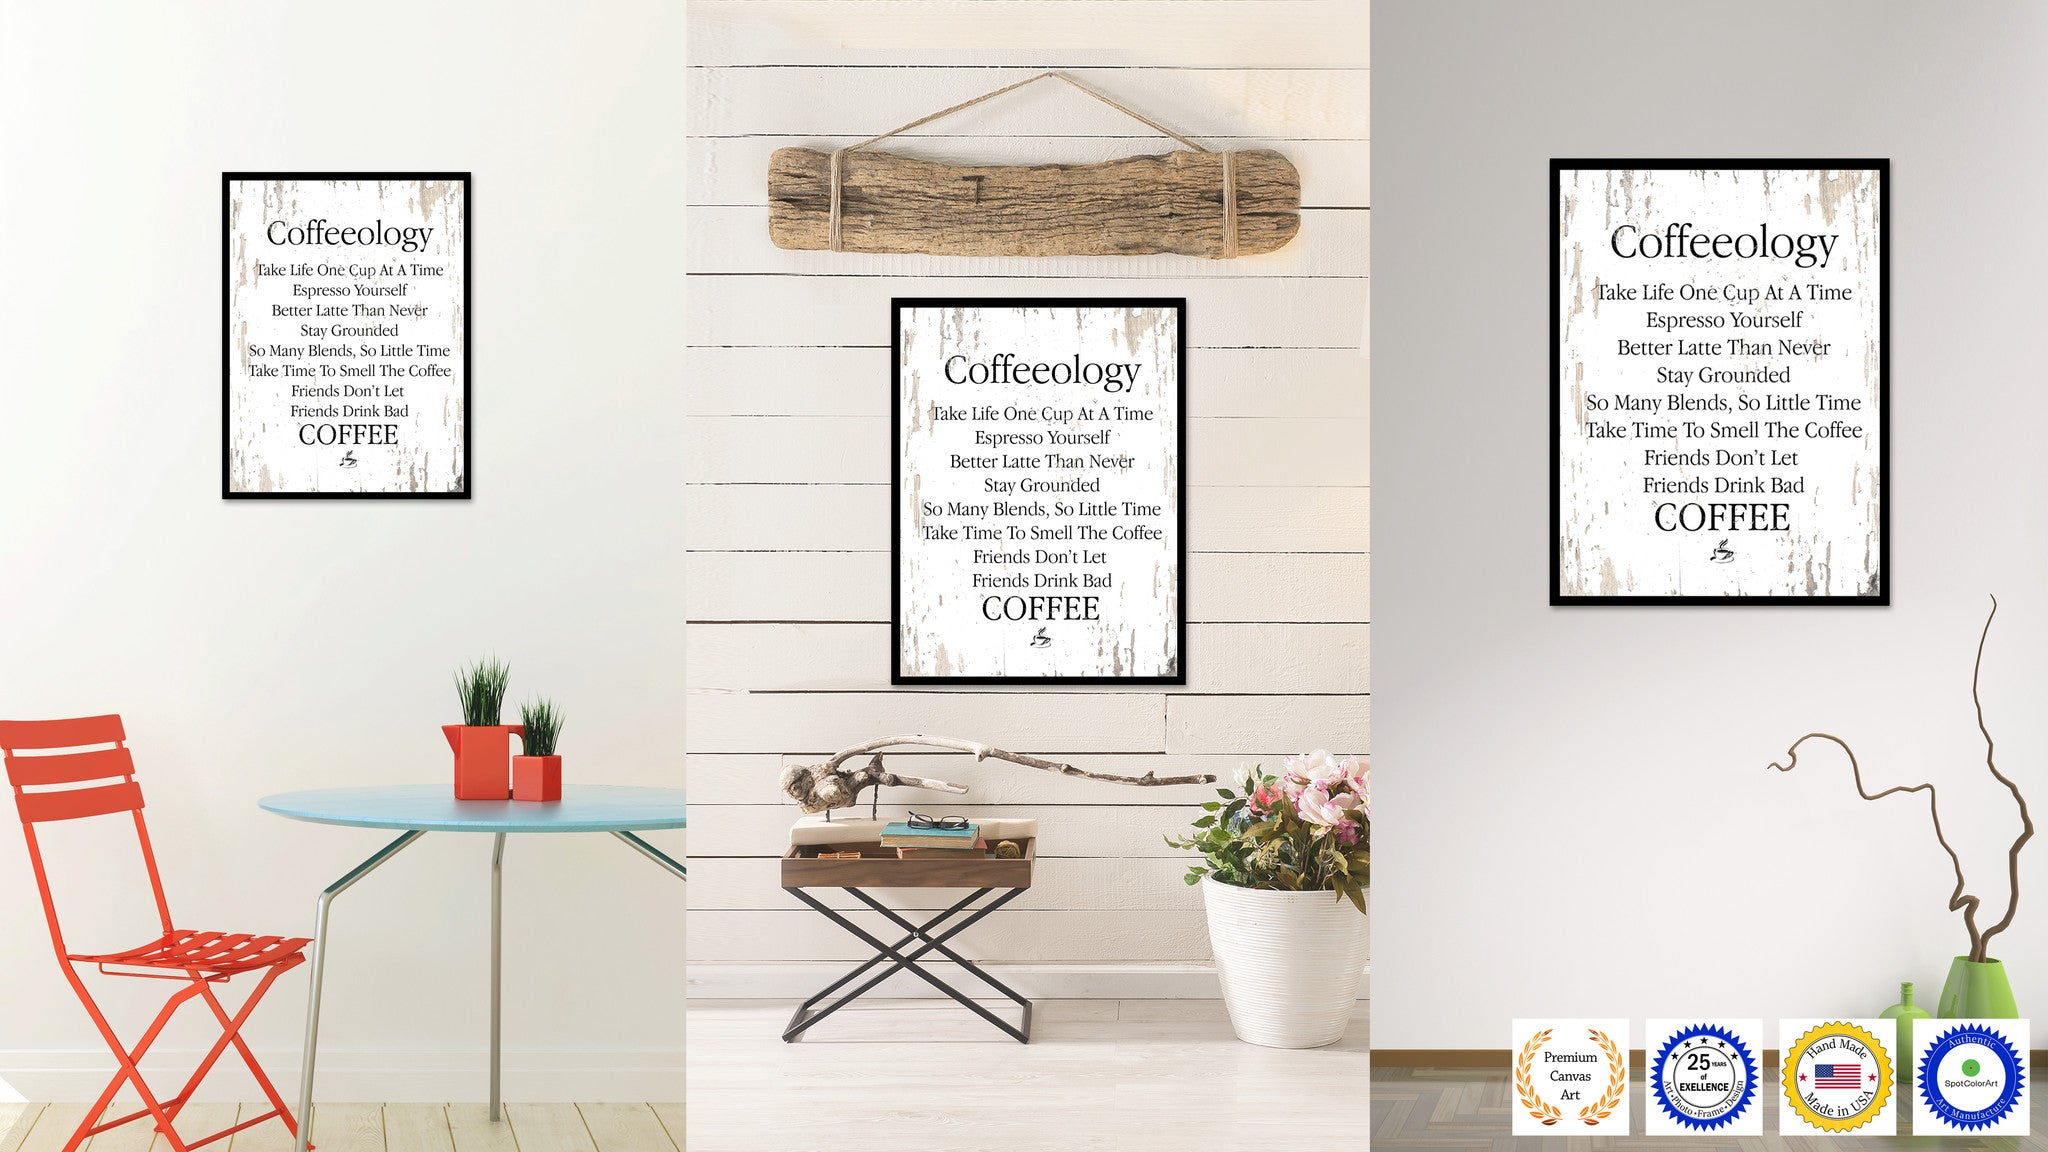 Coffeeology Take Life One Cup At A Time Espresso Yourself Better Latte Than Never Stay Grounded So many Blends So Little Time Take Time To Smell The Coffee Friends Don't Let Friends Drink Bad Coffee White Canvas Print